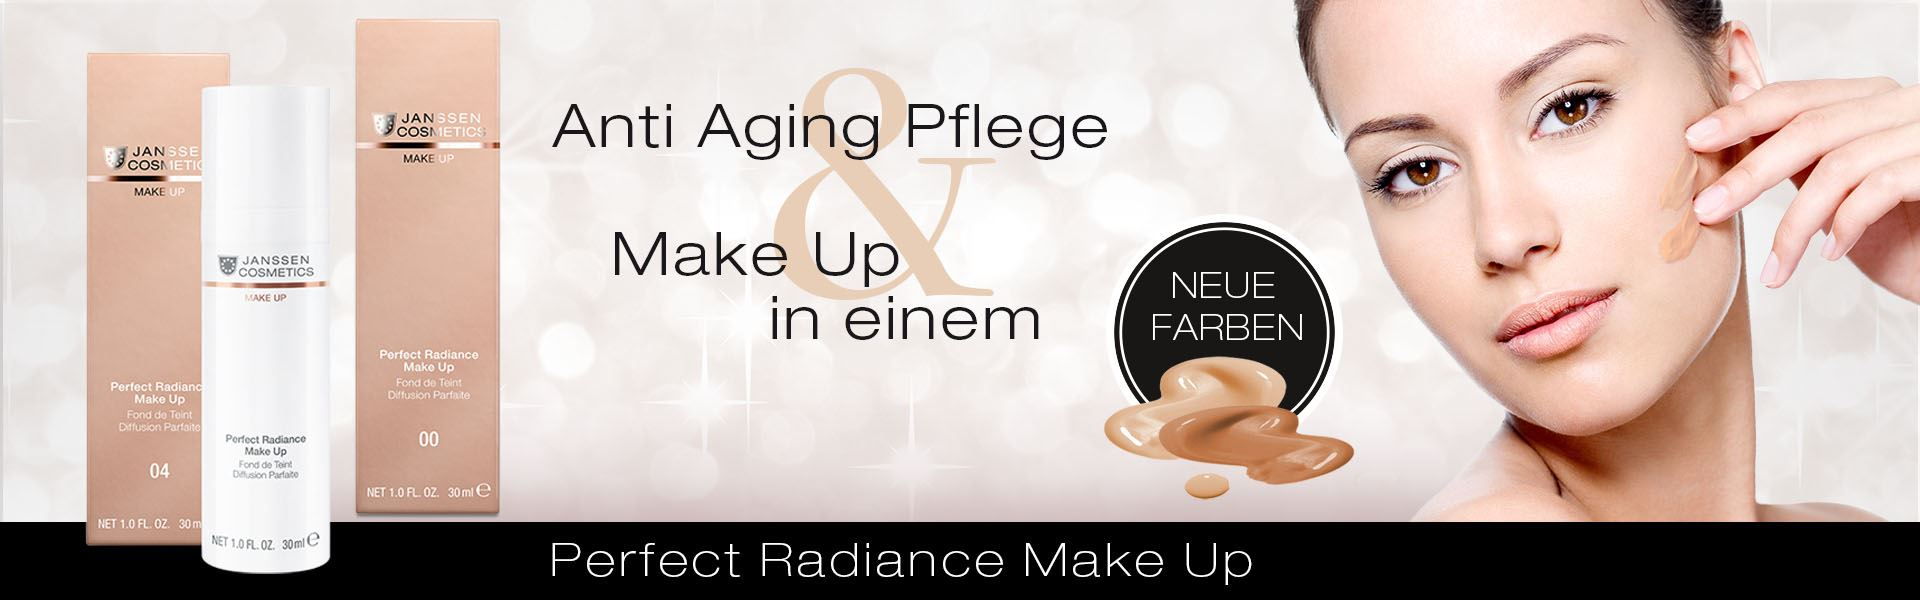 Perfect Radiance Make Up - Anti-Aging-Pflege & Make-Up in einem